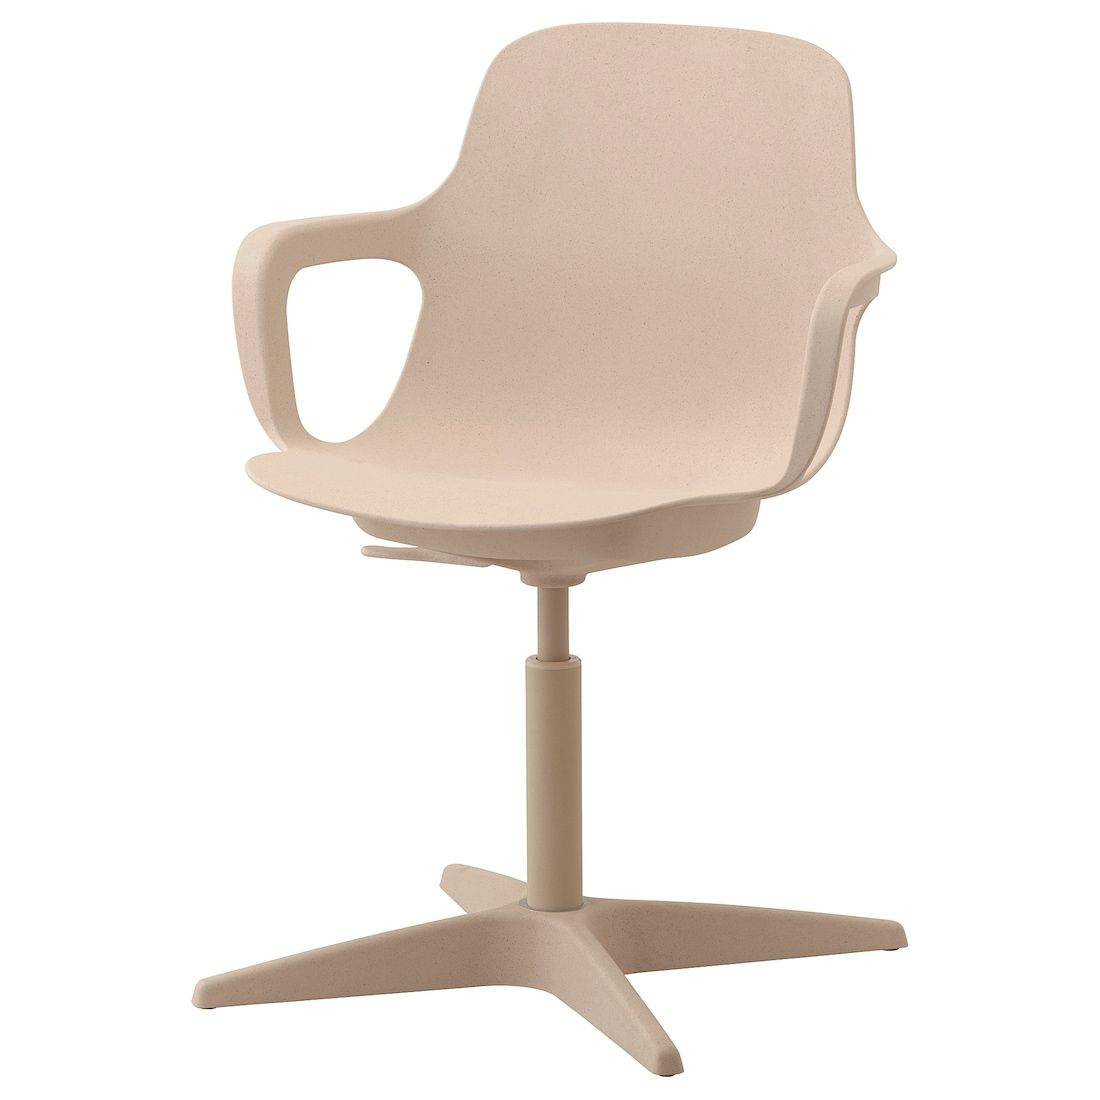 Odger Swivel Chair White Beige Ikea Swivel Chair Chair Office Chair